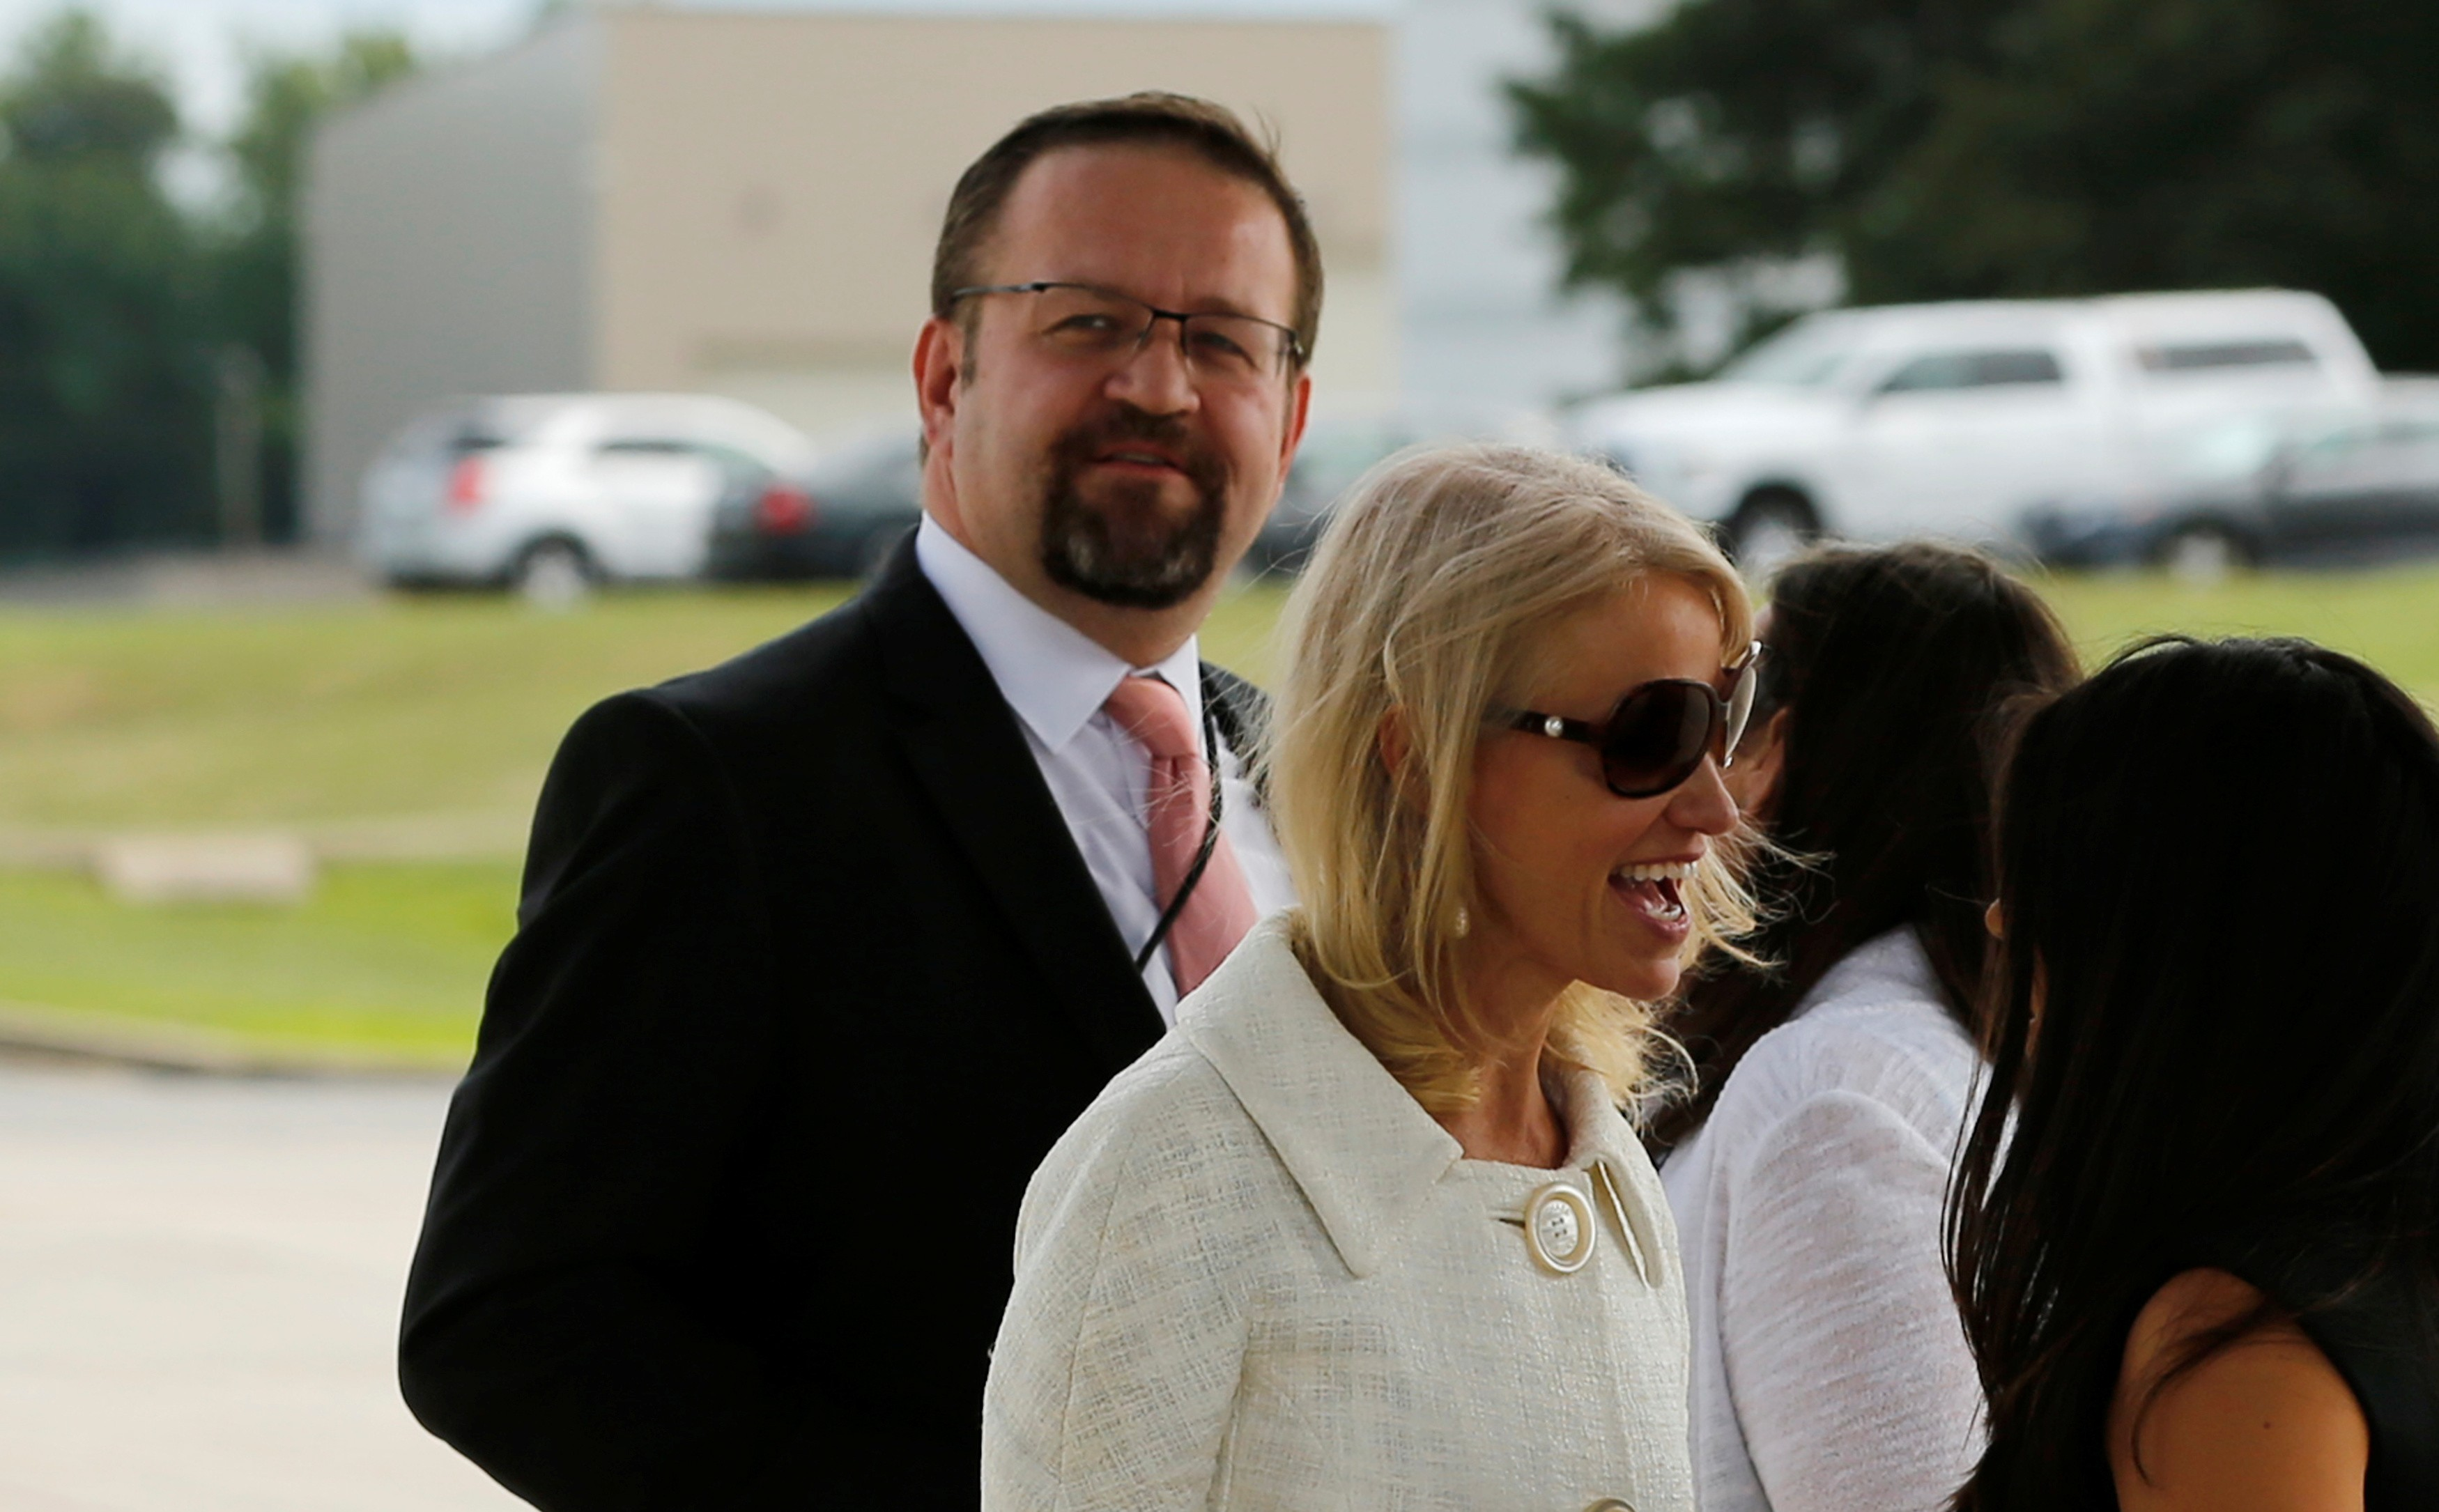 White House adviser Sebastian Gorka (L), standing with White House counselor Kellyanne Conway (C), waits for U.S. President Donald Trump to arrive to board Air Force One for travel to Ohio from Joint Base Andrews, Maryland on July 25, 2017. (REUTERS/Jonathan Ernst)